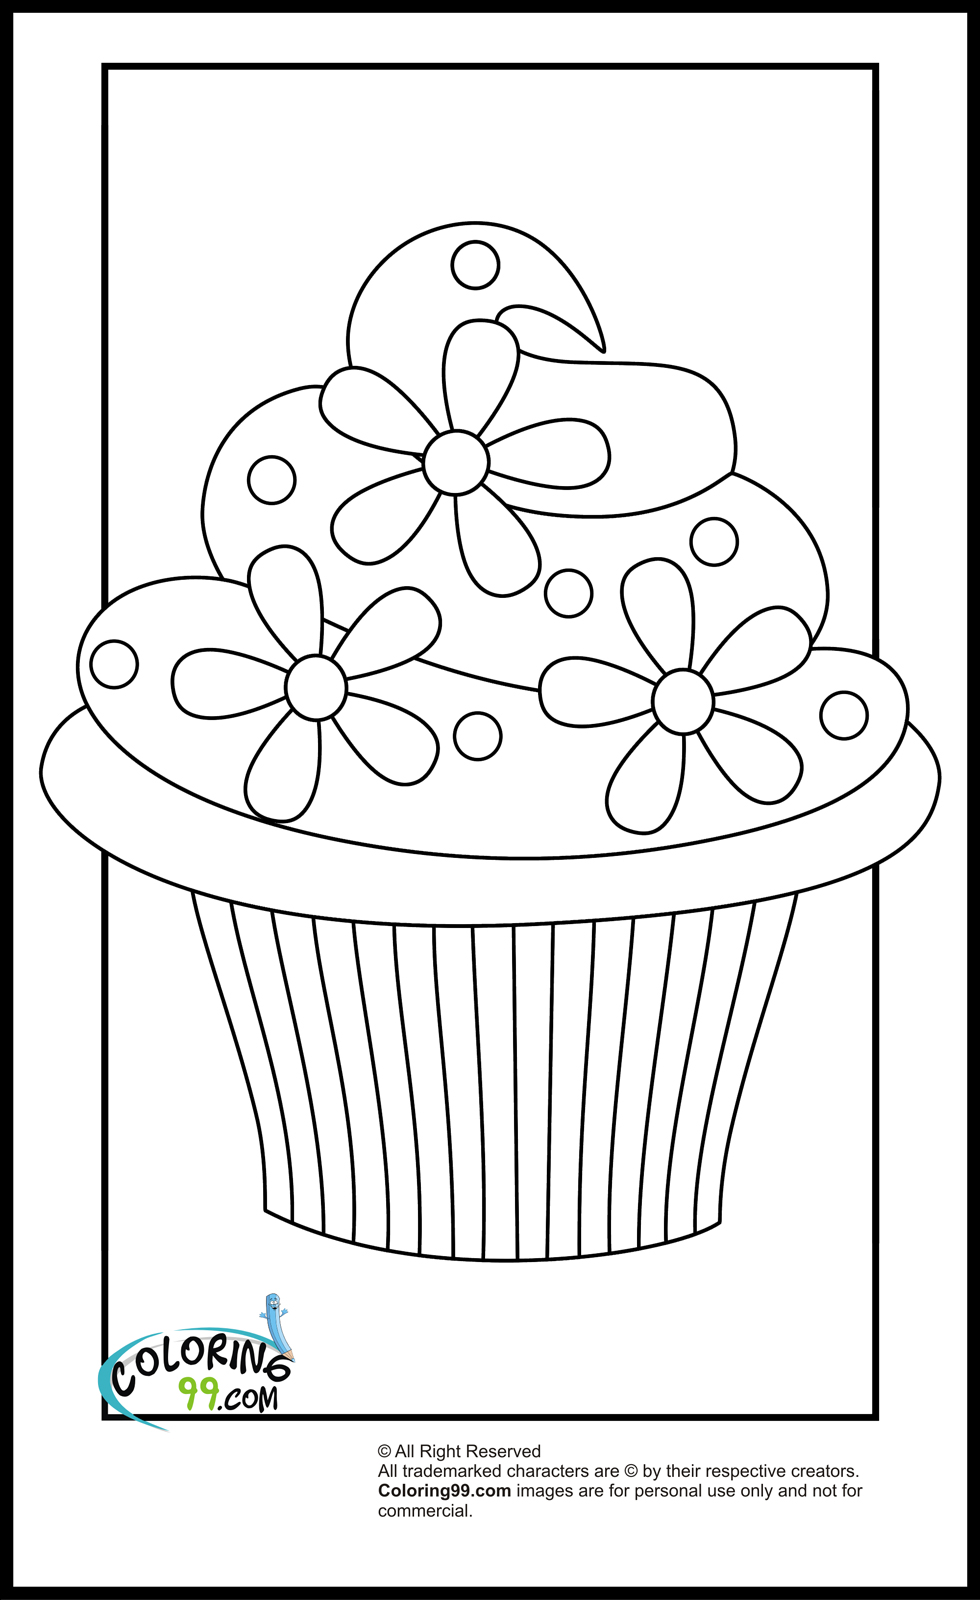 coloring worksheets cupcake coloring pages team colors worksheets coloring